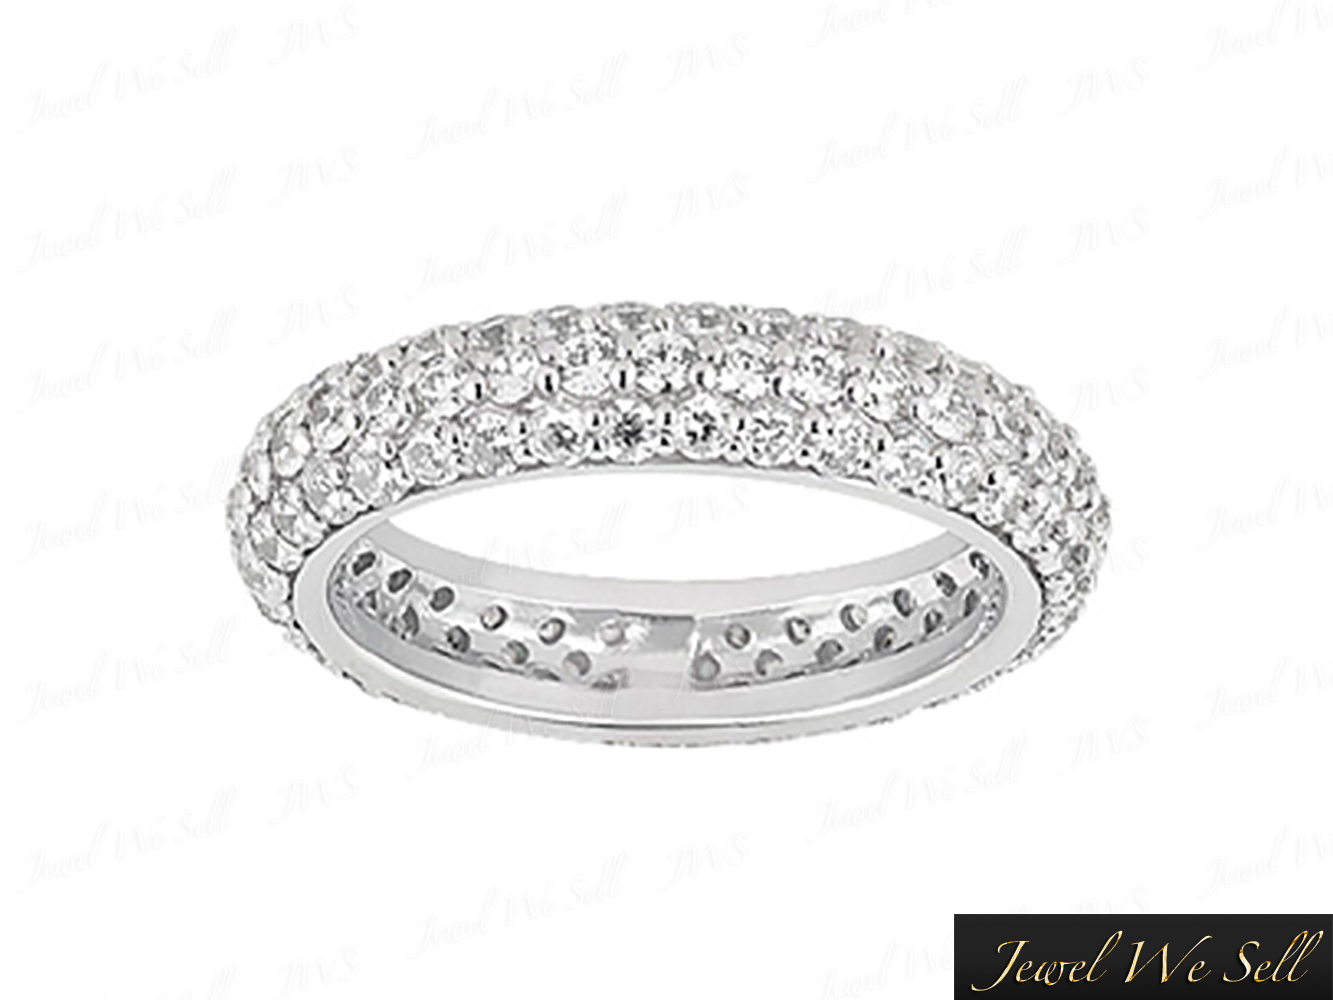 Details About 1.75Ct Round Cut Diamond 3 Row Pave Eternity Band Wedding  Ring 14K Gold H Si2 In Triple Row Micropavé Diamond Engagement Rings (Gallery 19 of 25)